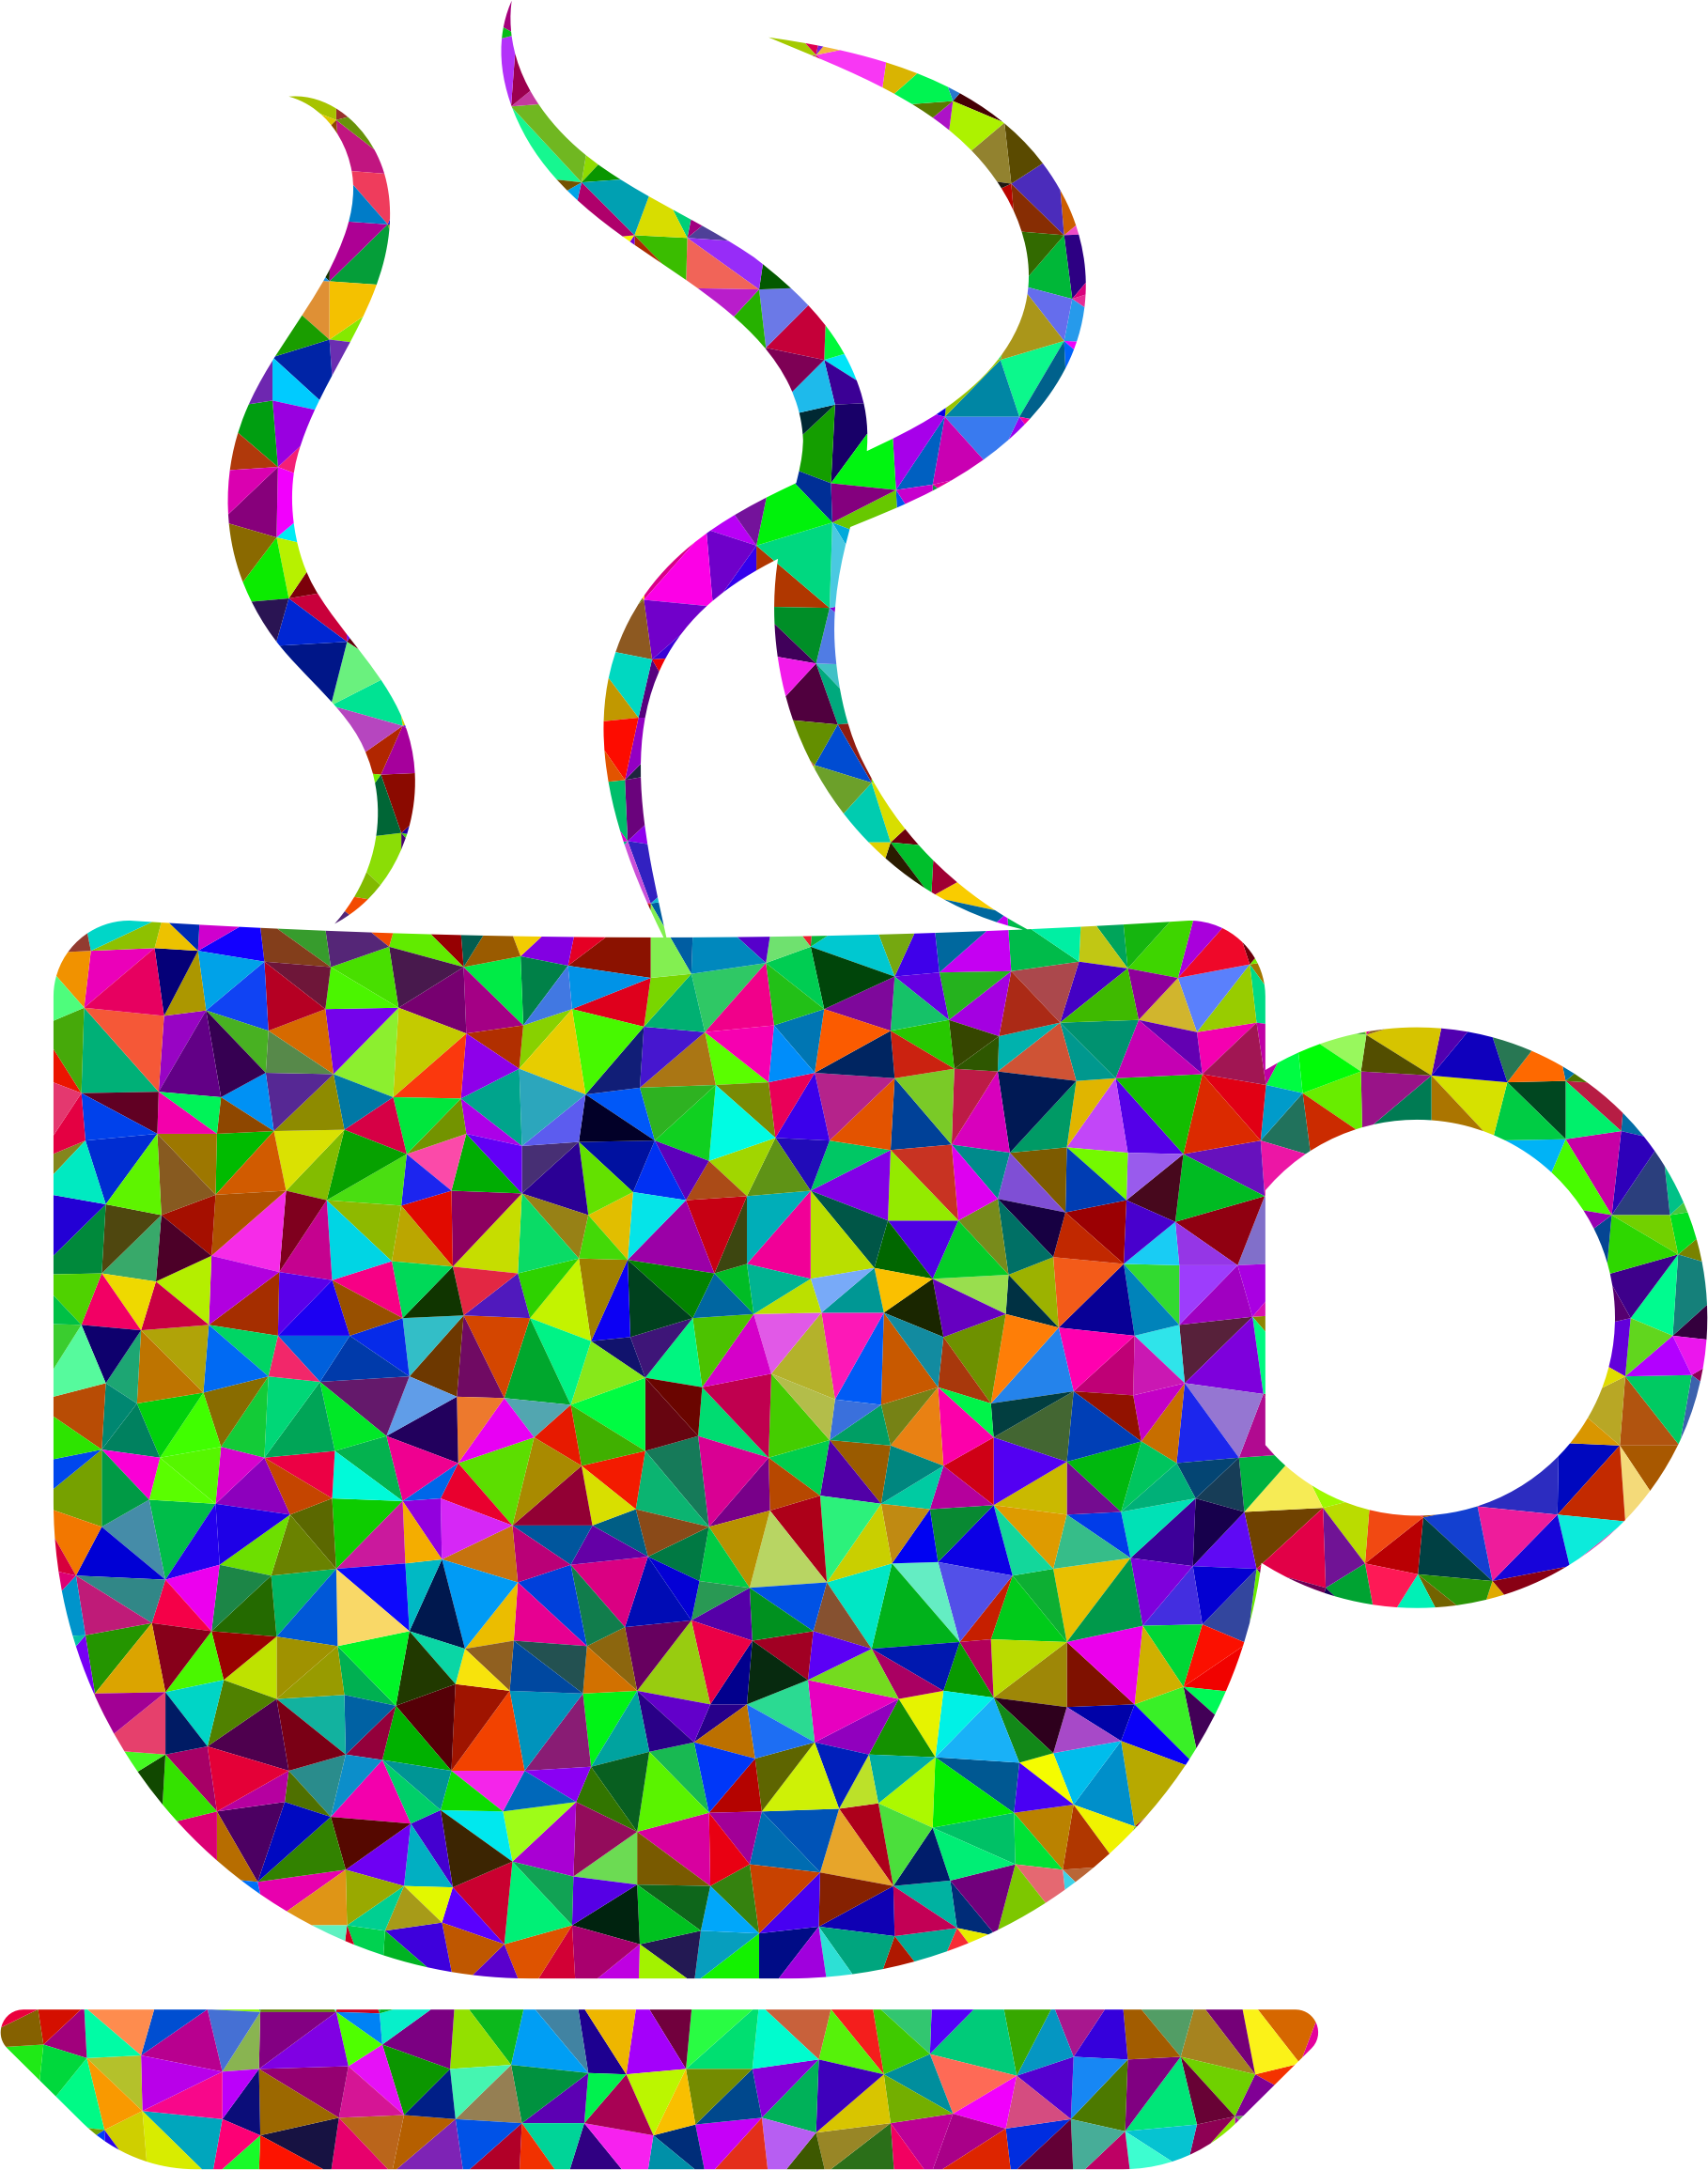 Coffee clipart refreshment. Prismatic low poly cup